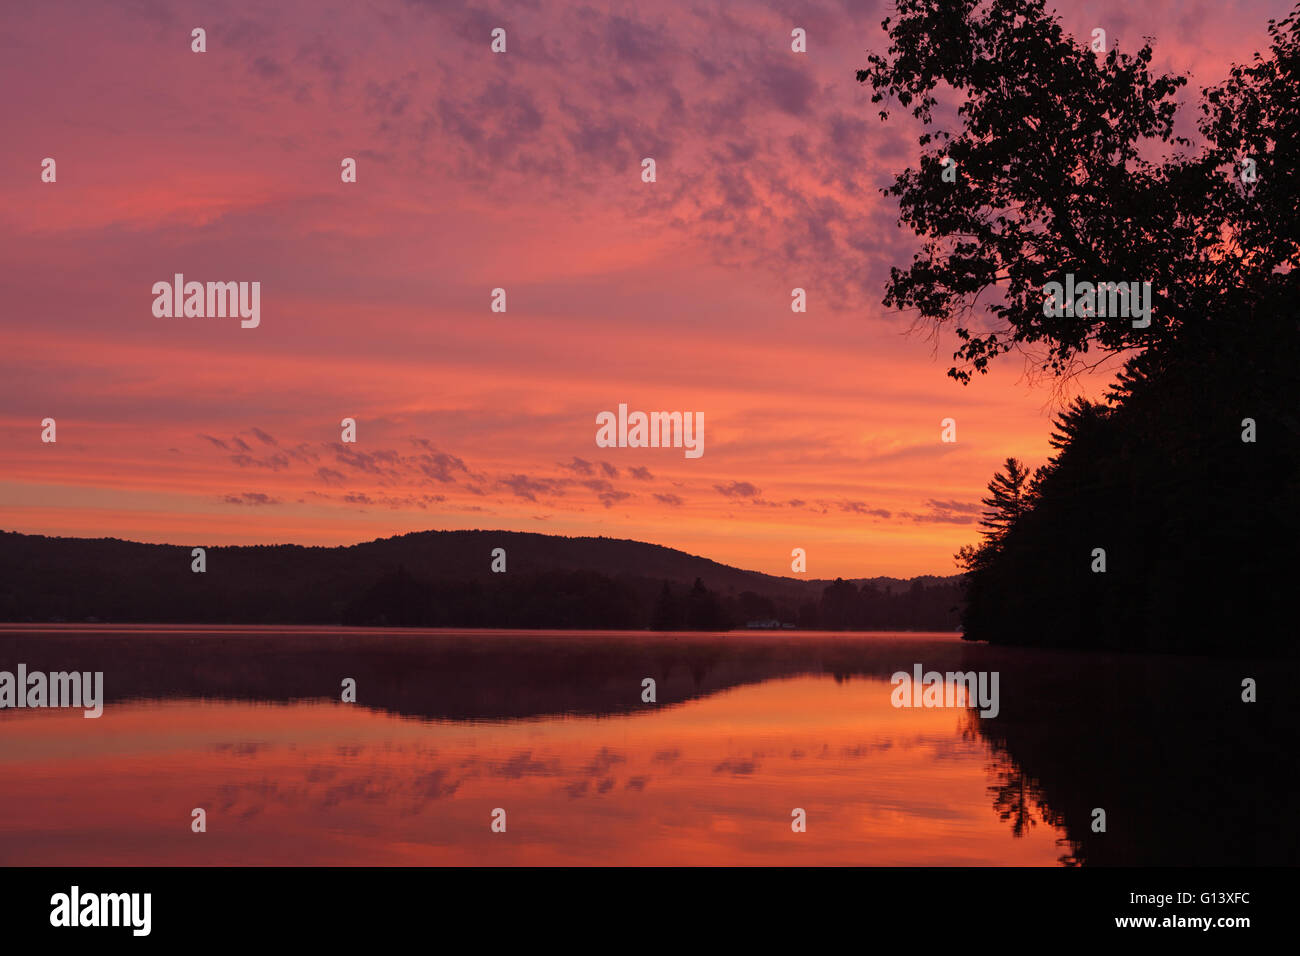 Landscape sunrise over a lake in Western Vermont with red clouds Stock Photo